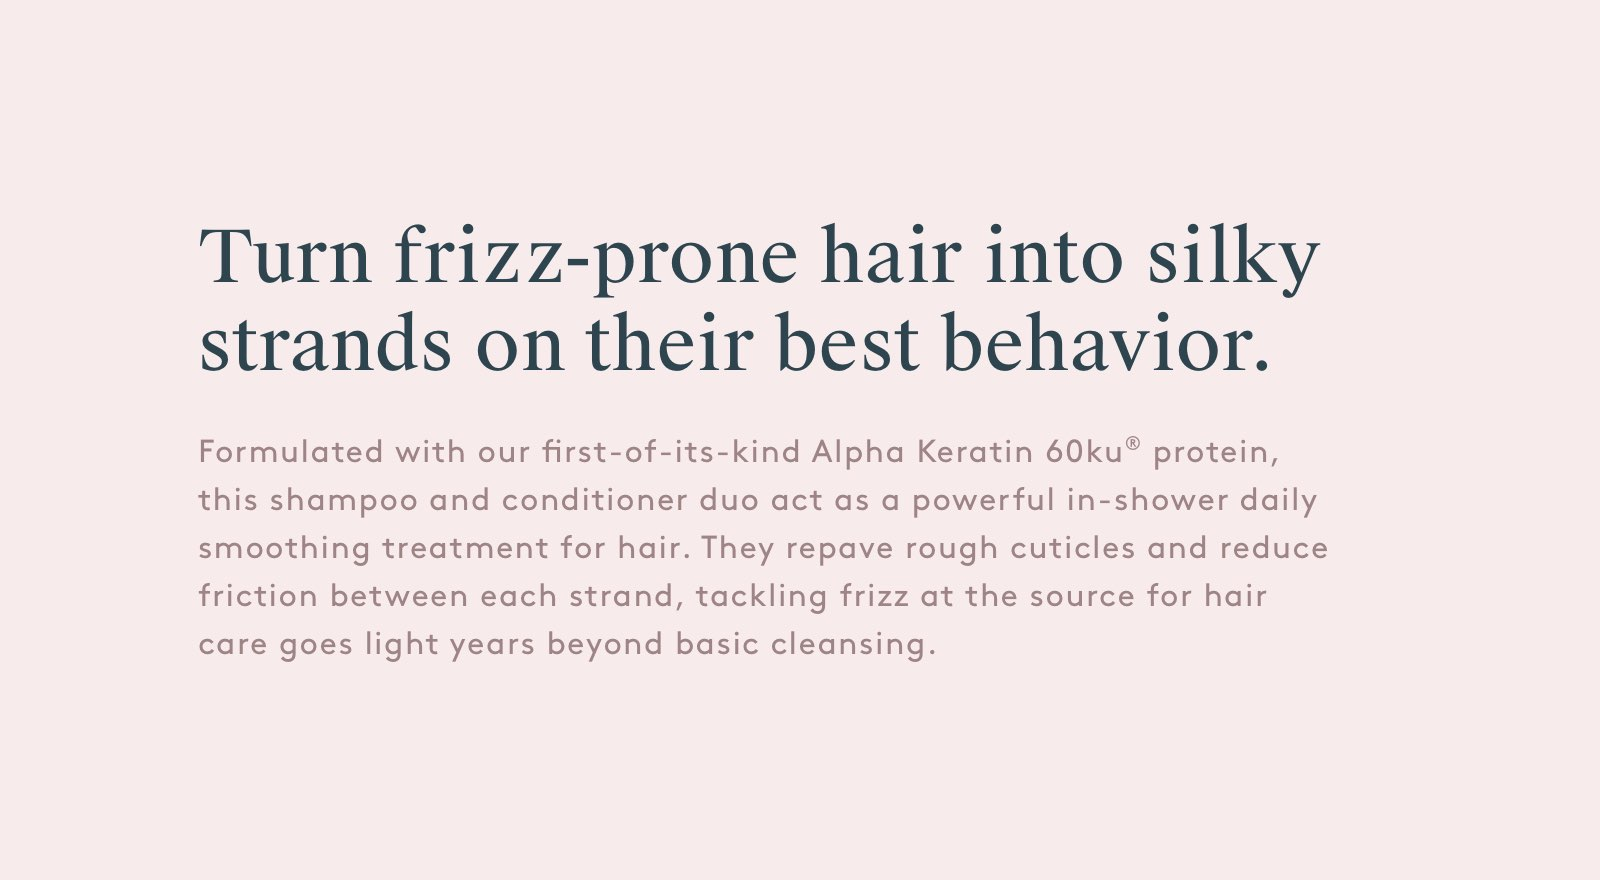 Turn frizz-prone hair into silky strands on their best behavior.